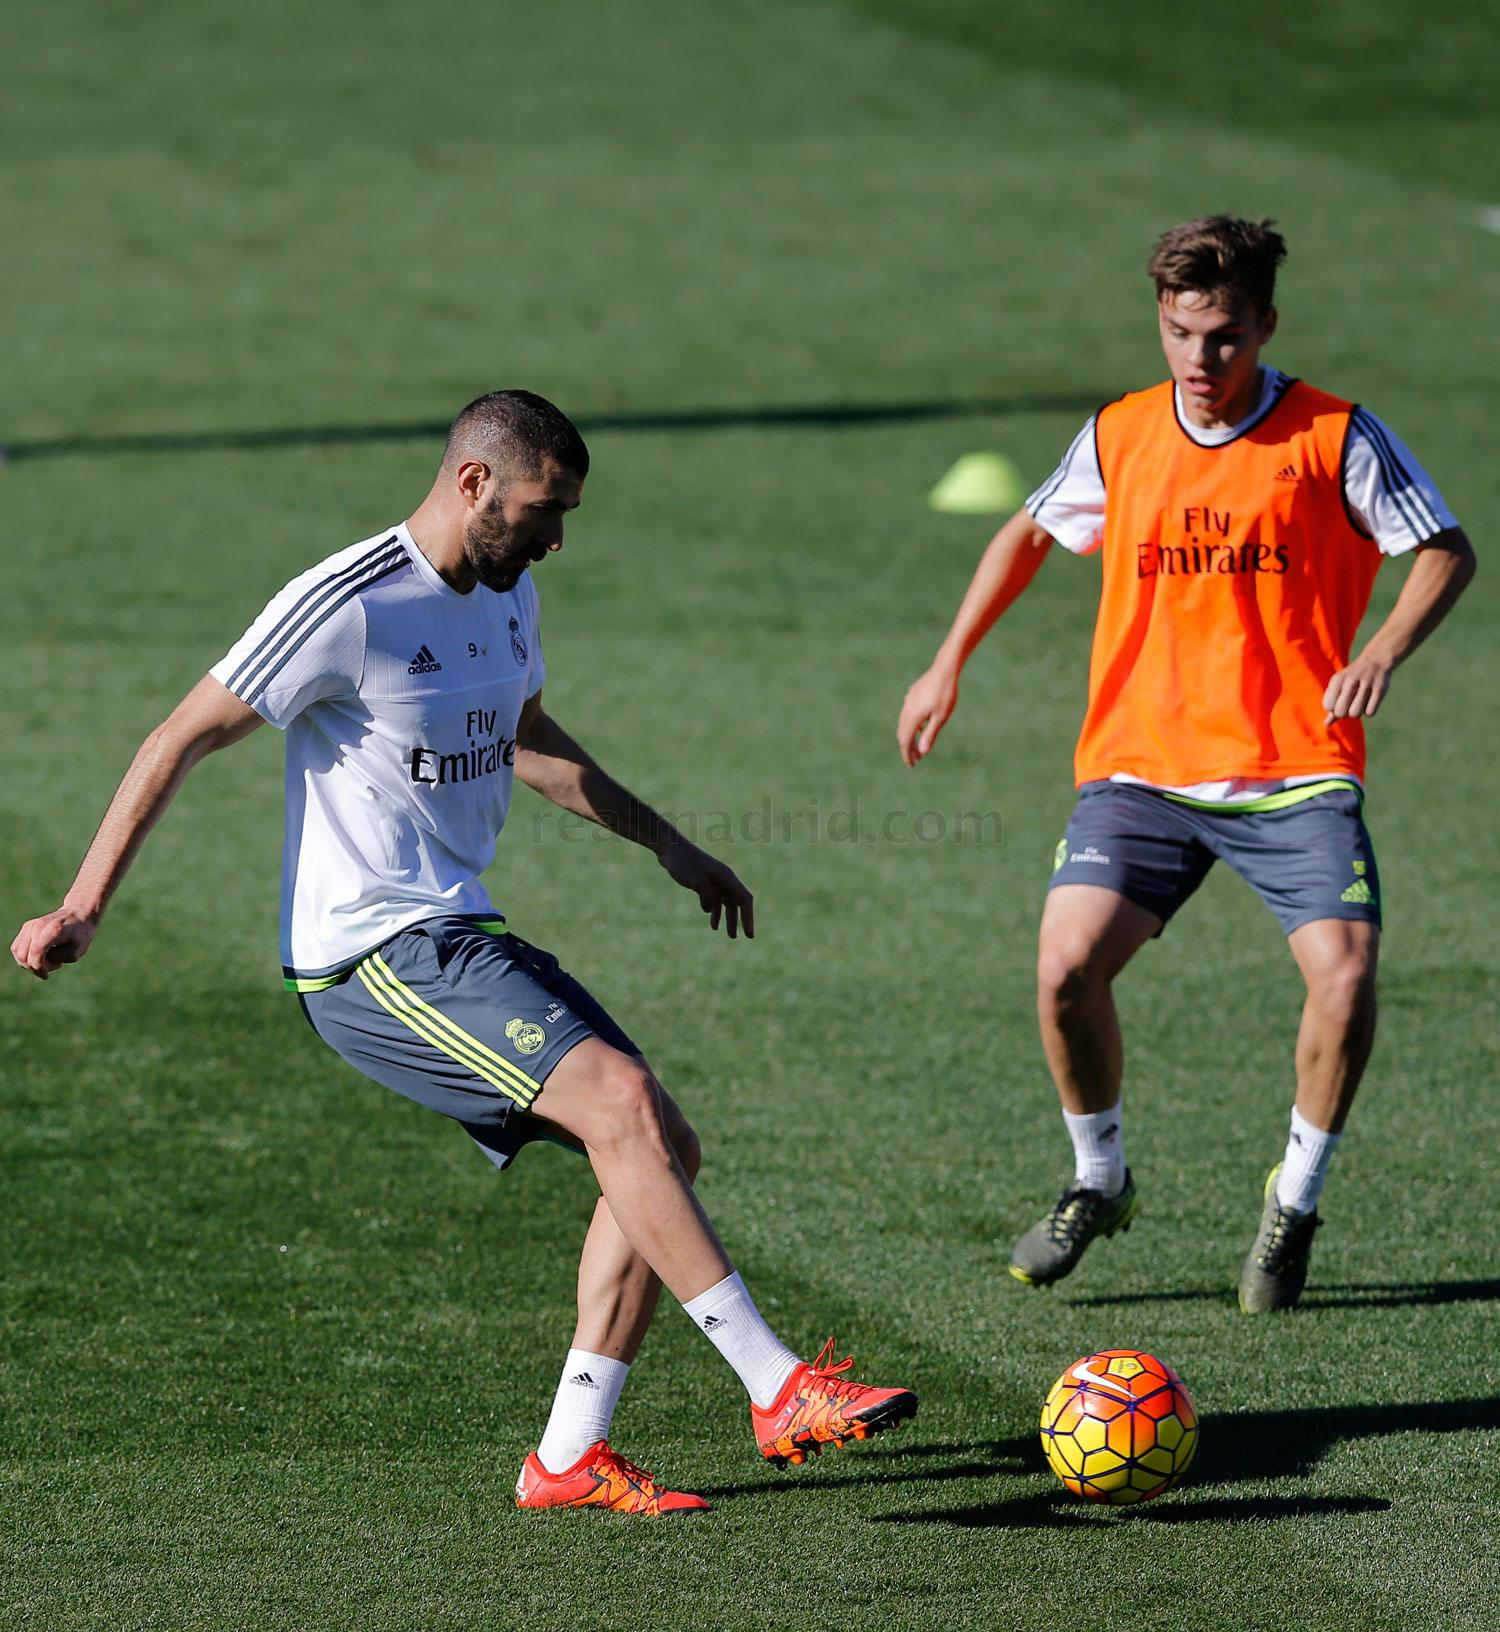 Real Madrid - Entrenamiento del Real Madrid - 10-11-2015